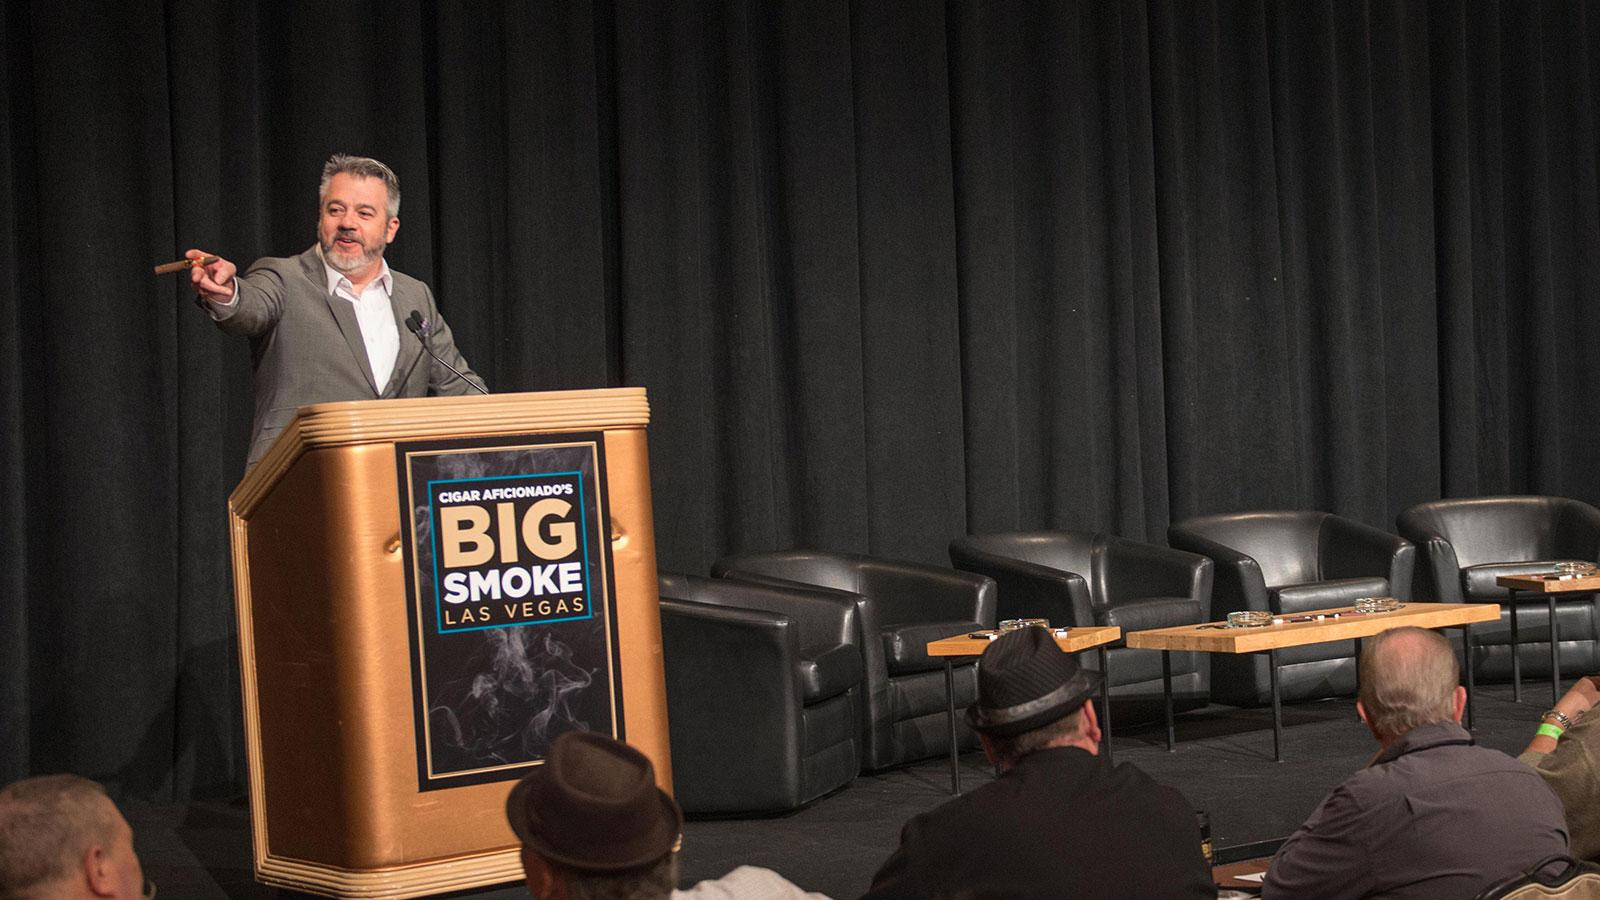 Executive editor David Savona welcoming everyone to the Big Smoke Seminars on Saturday morning.